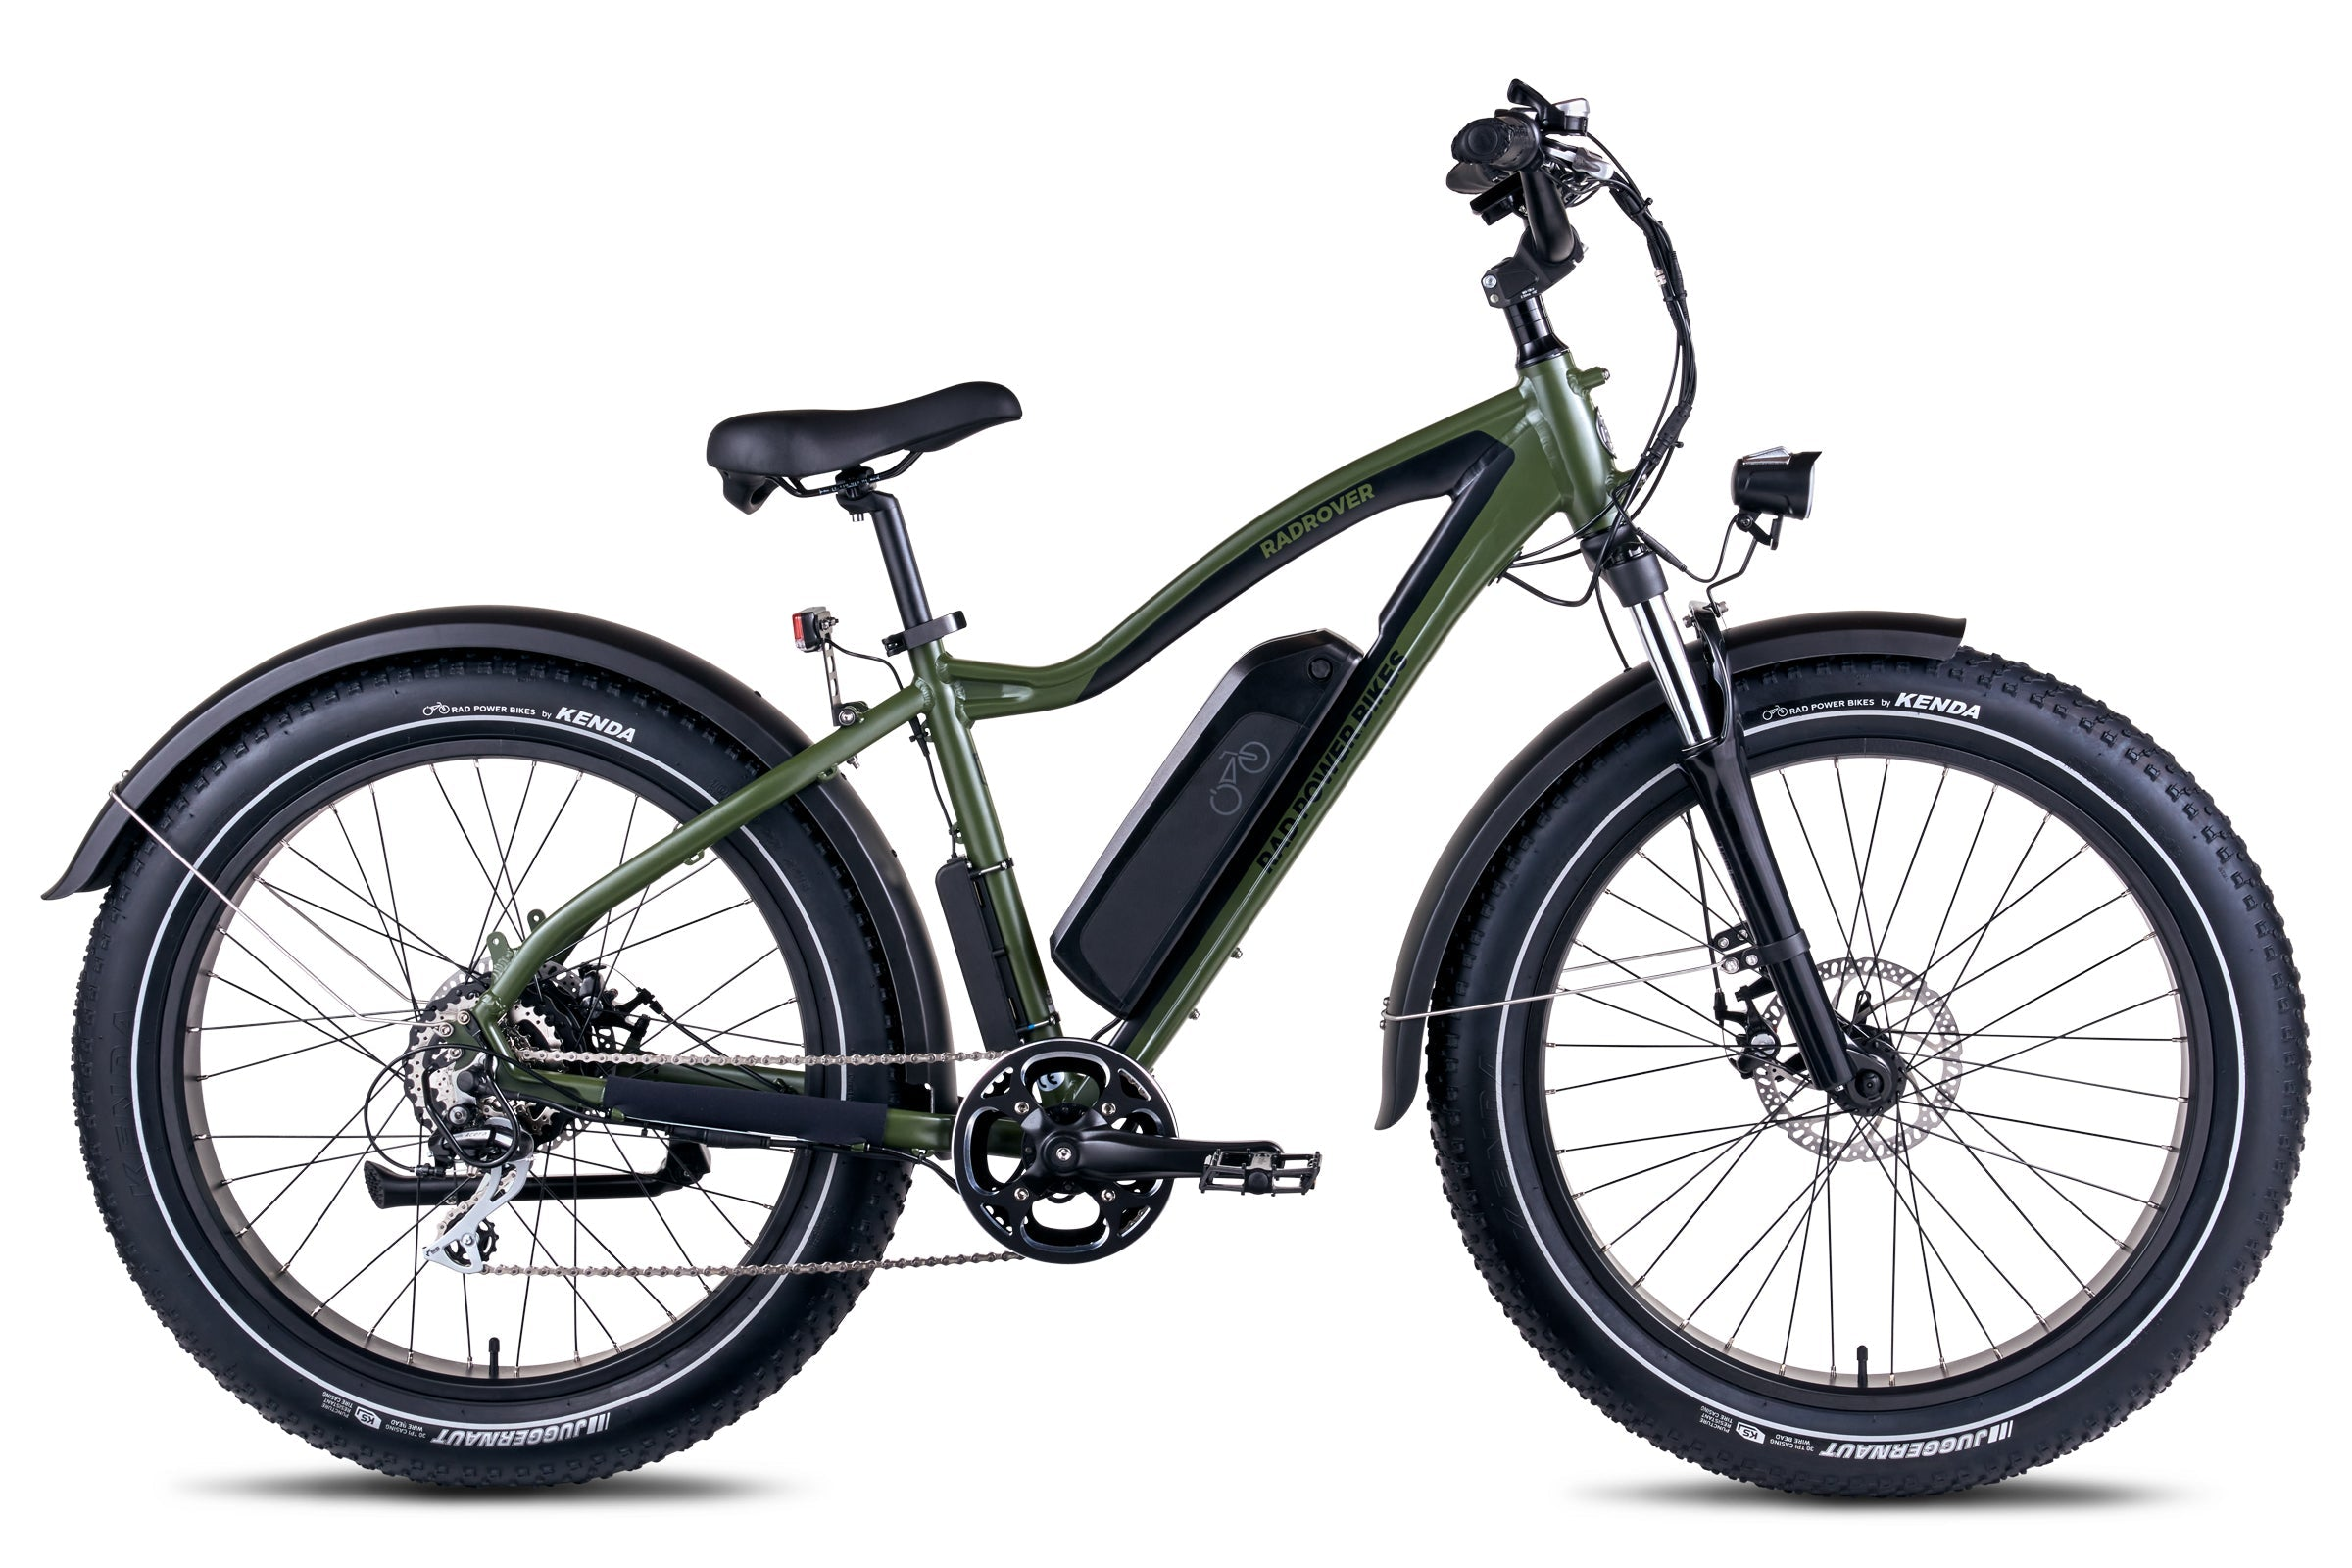 Rad Power Bikes RadRover Electric Fat Bike Version 5 in Forest Green (Limited Edition)